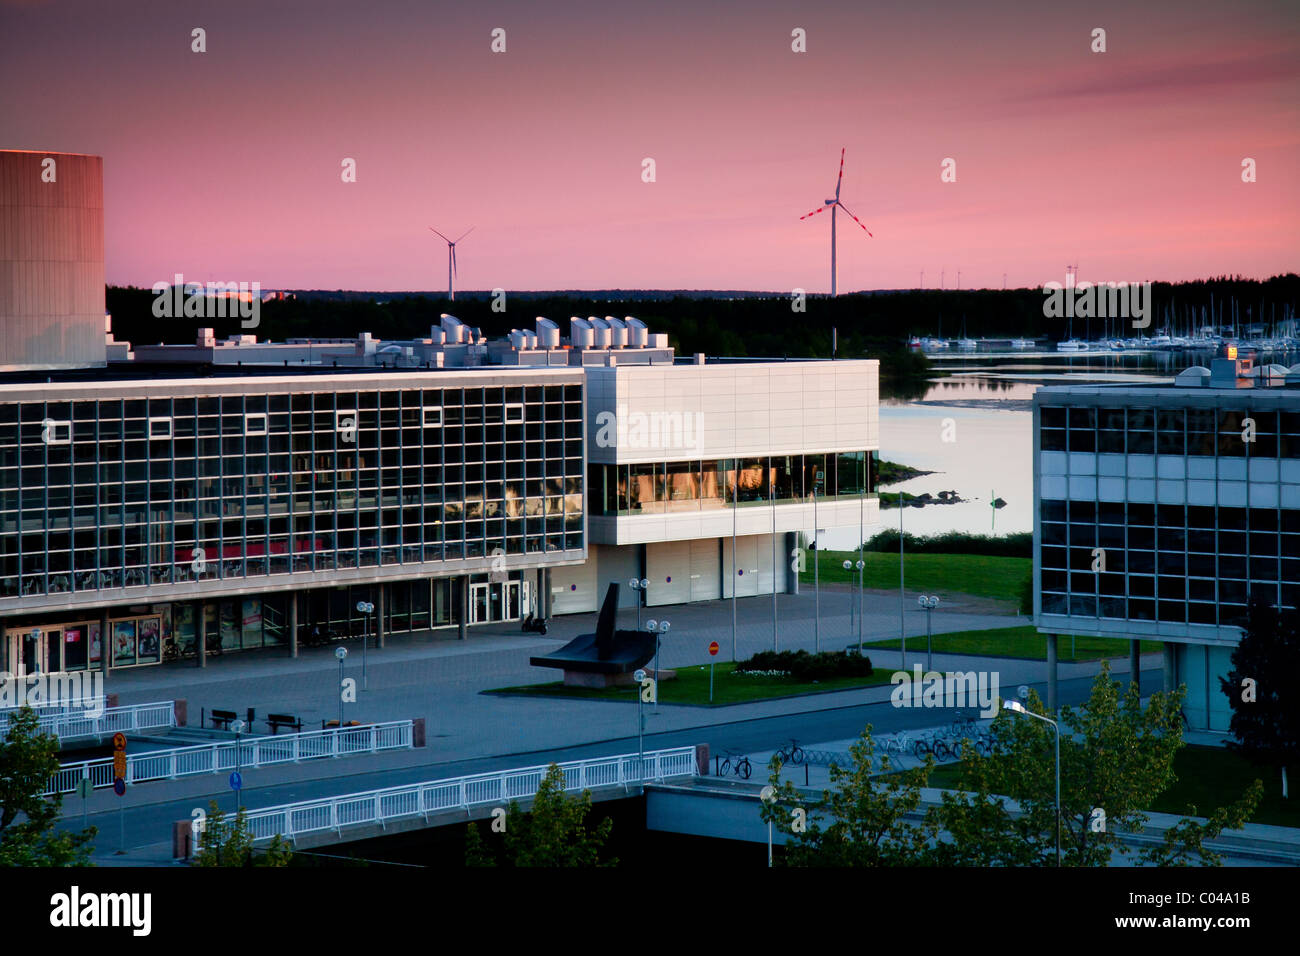 Shot in Oulu Finland at 11:30 in the evening. - Stock Image